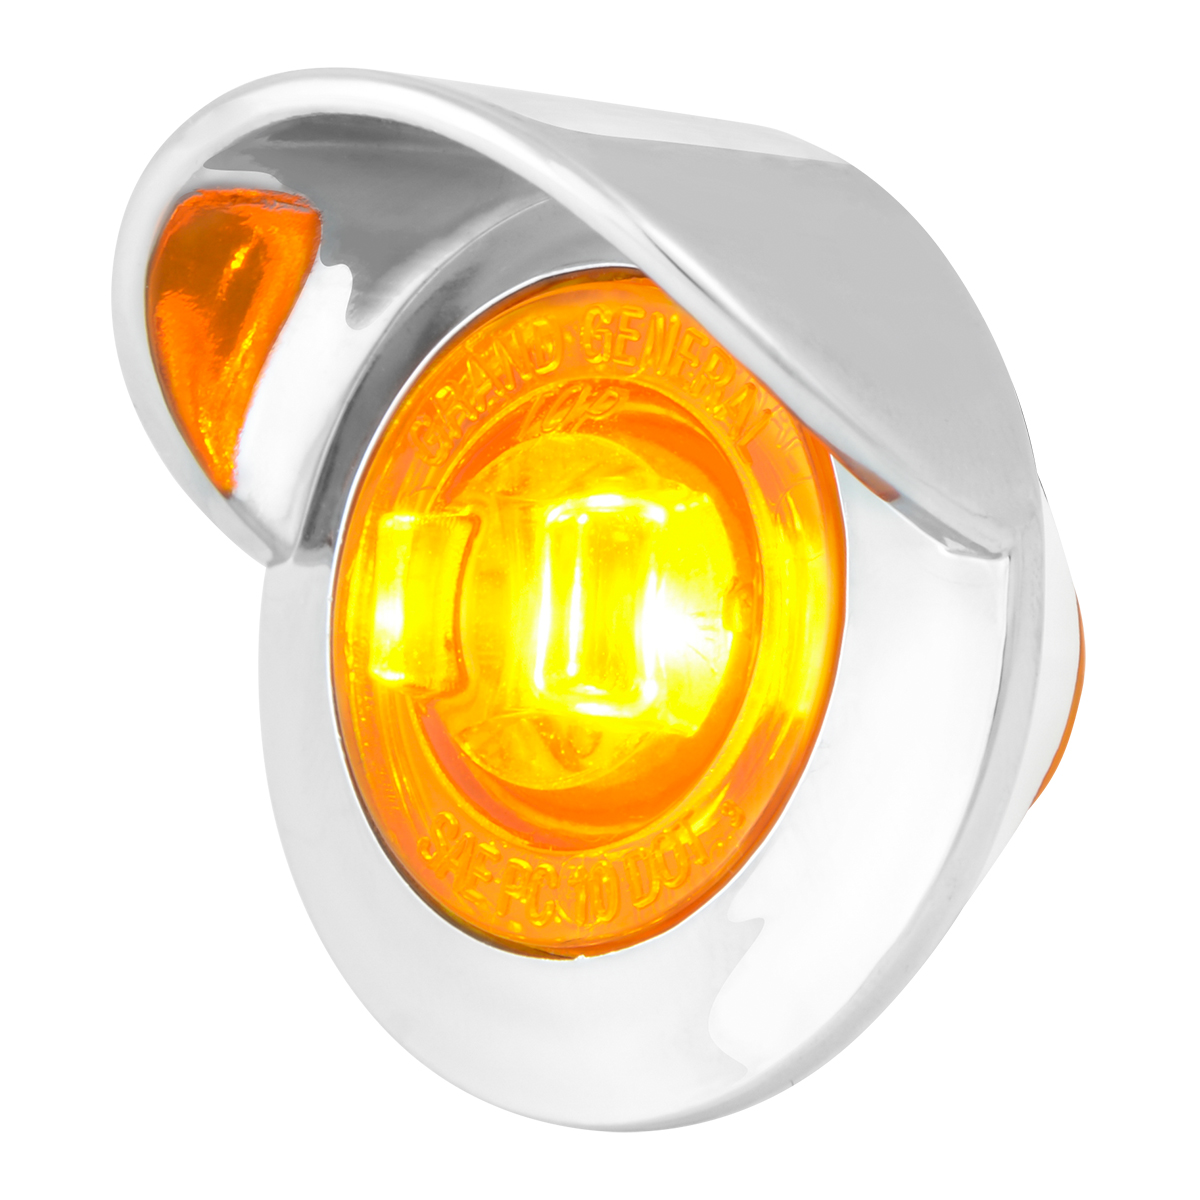 "75250 1"" Dia. Mini Push/Screw-in Wide Angle LED Marker Light w/ Chrome Bezel & Visor"